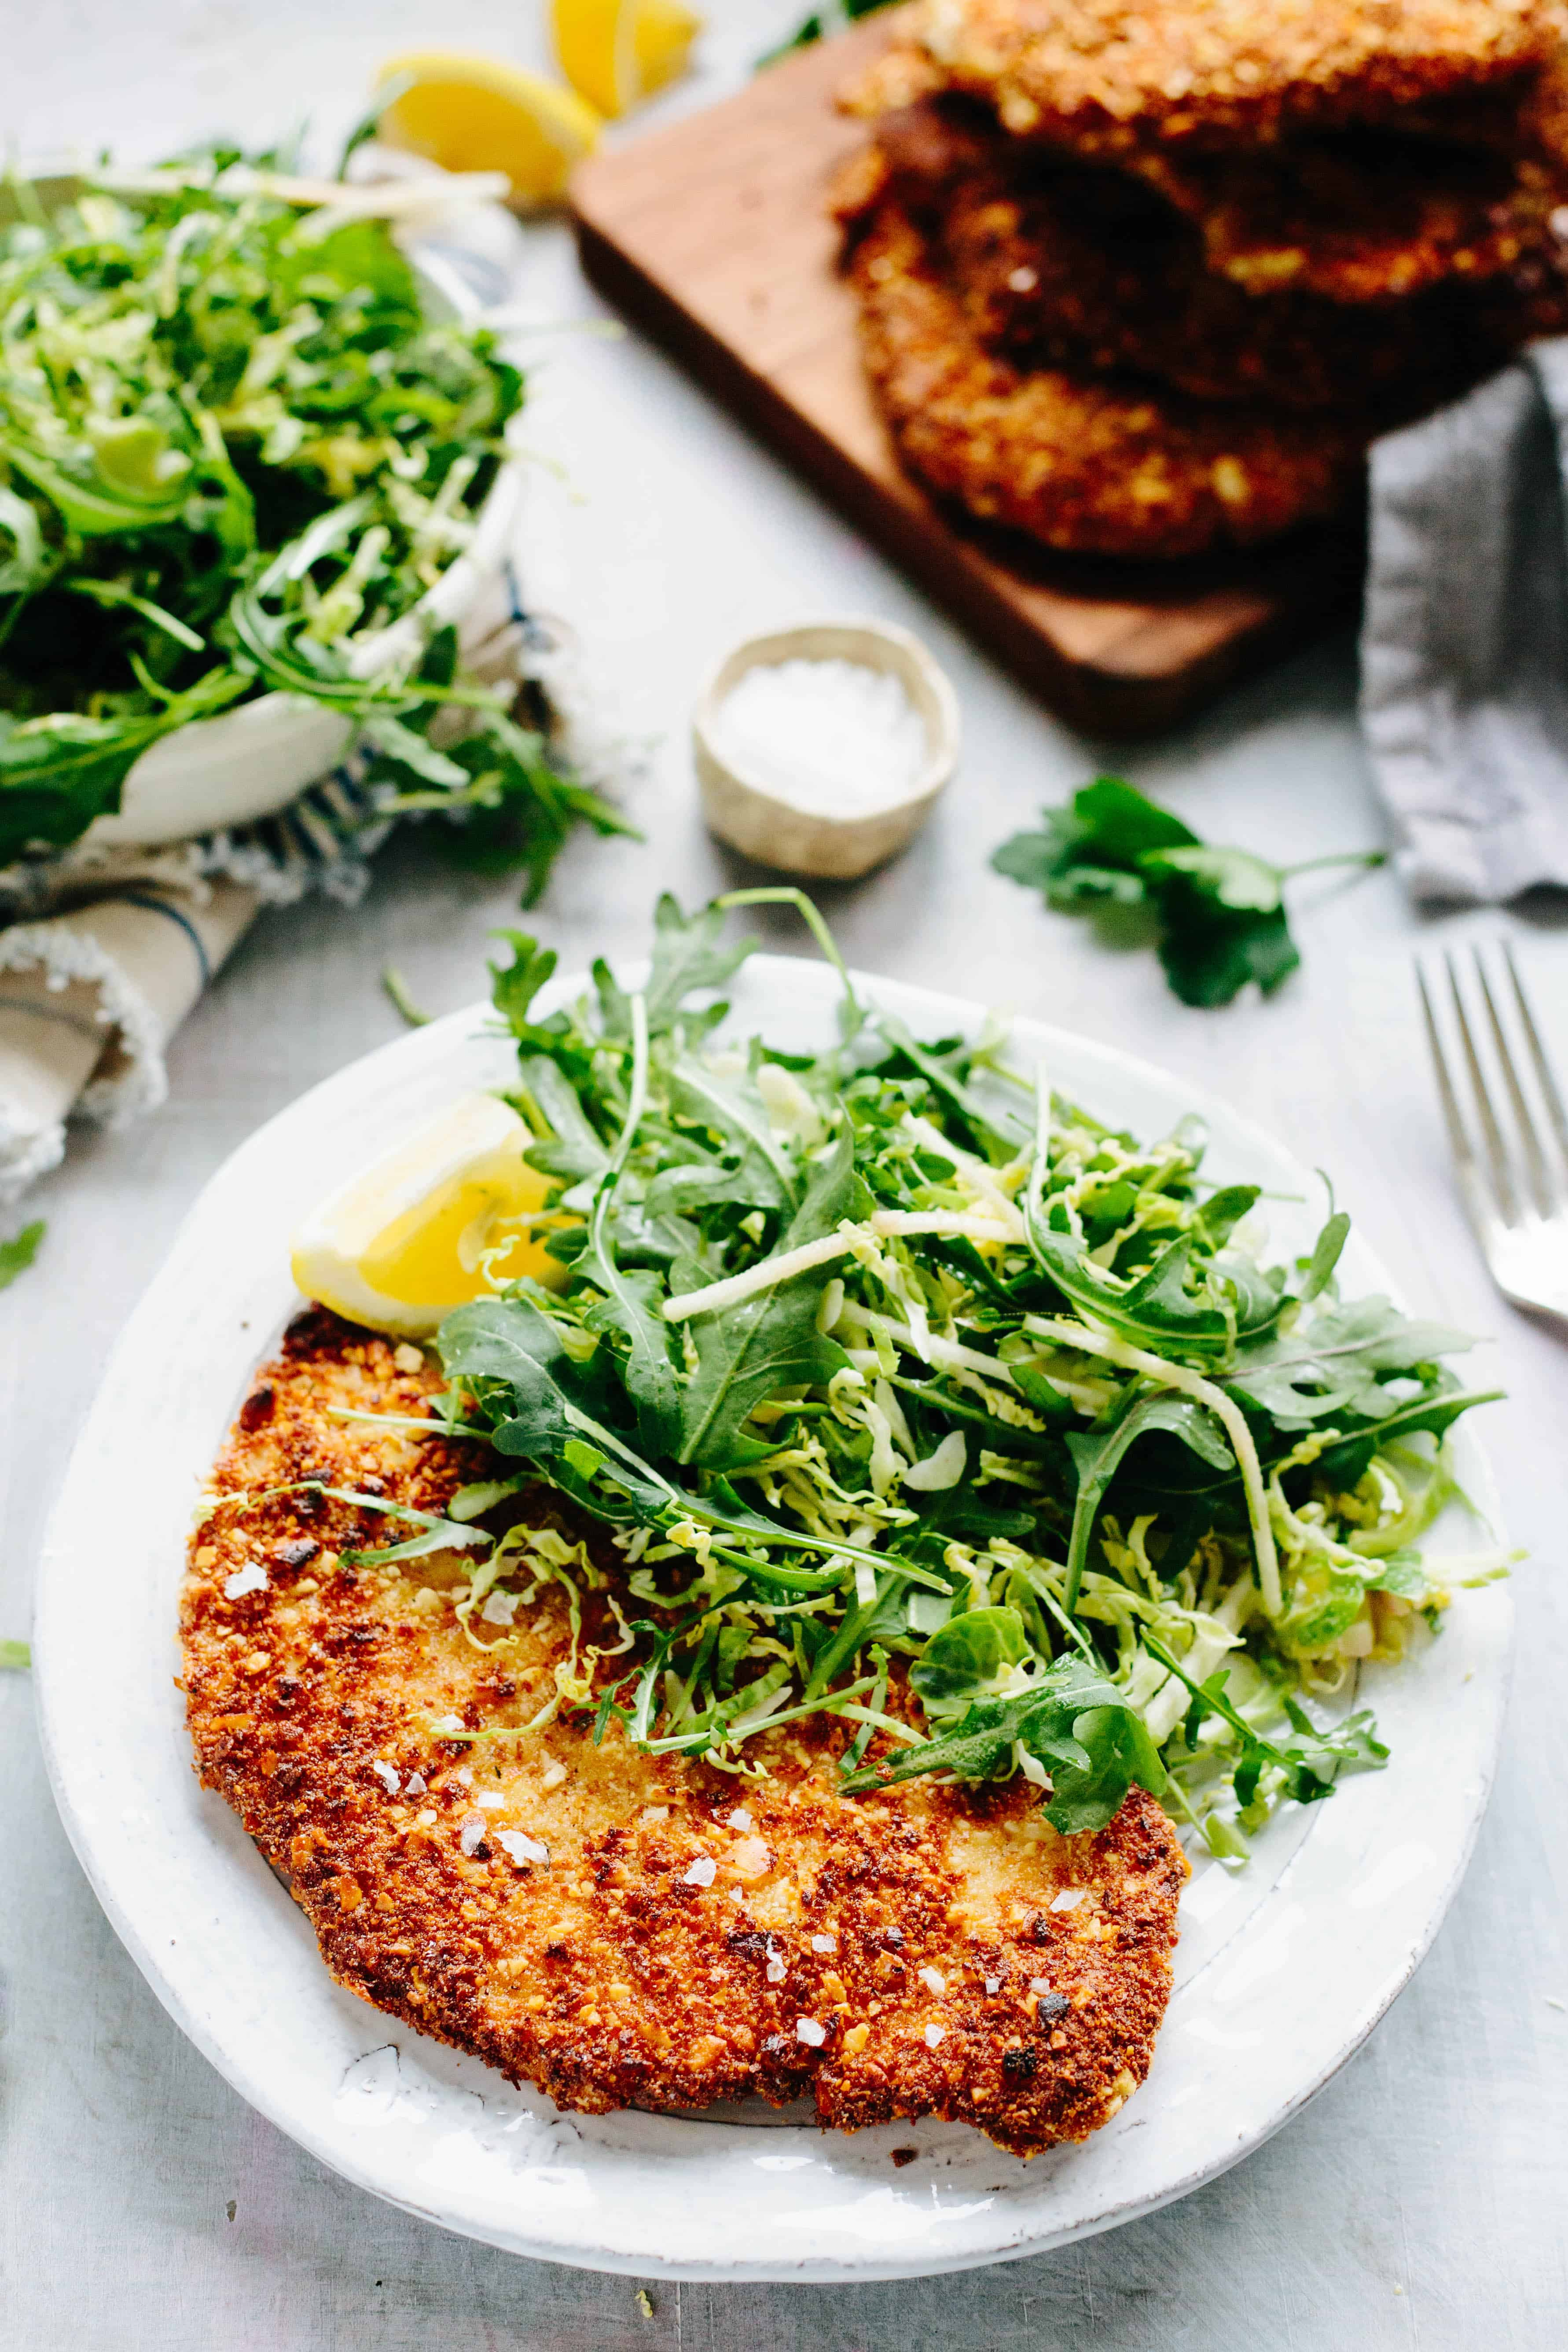 Vertical shot of a white dinner plate containing arugula salad and a breaded chicken cutlet.